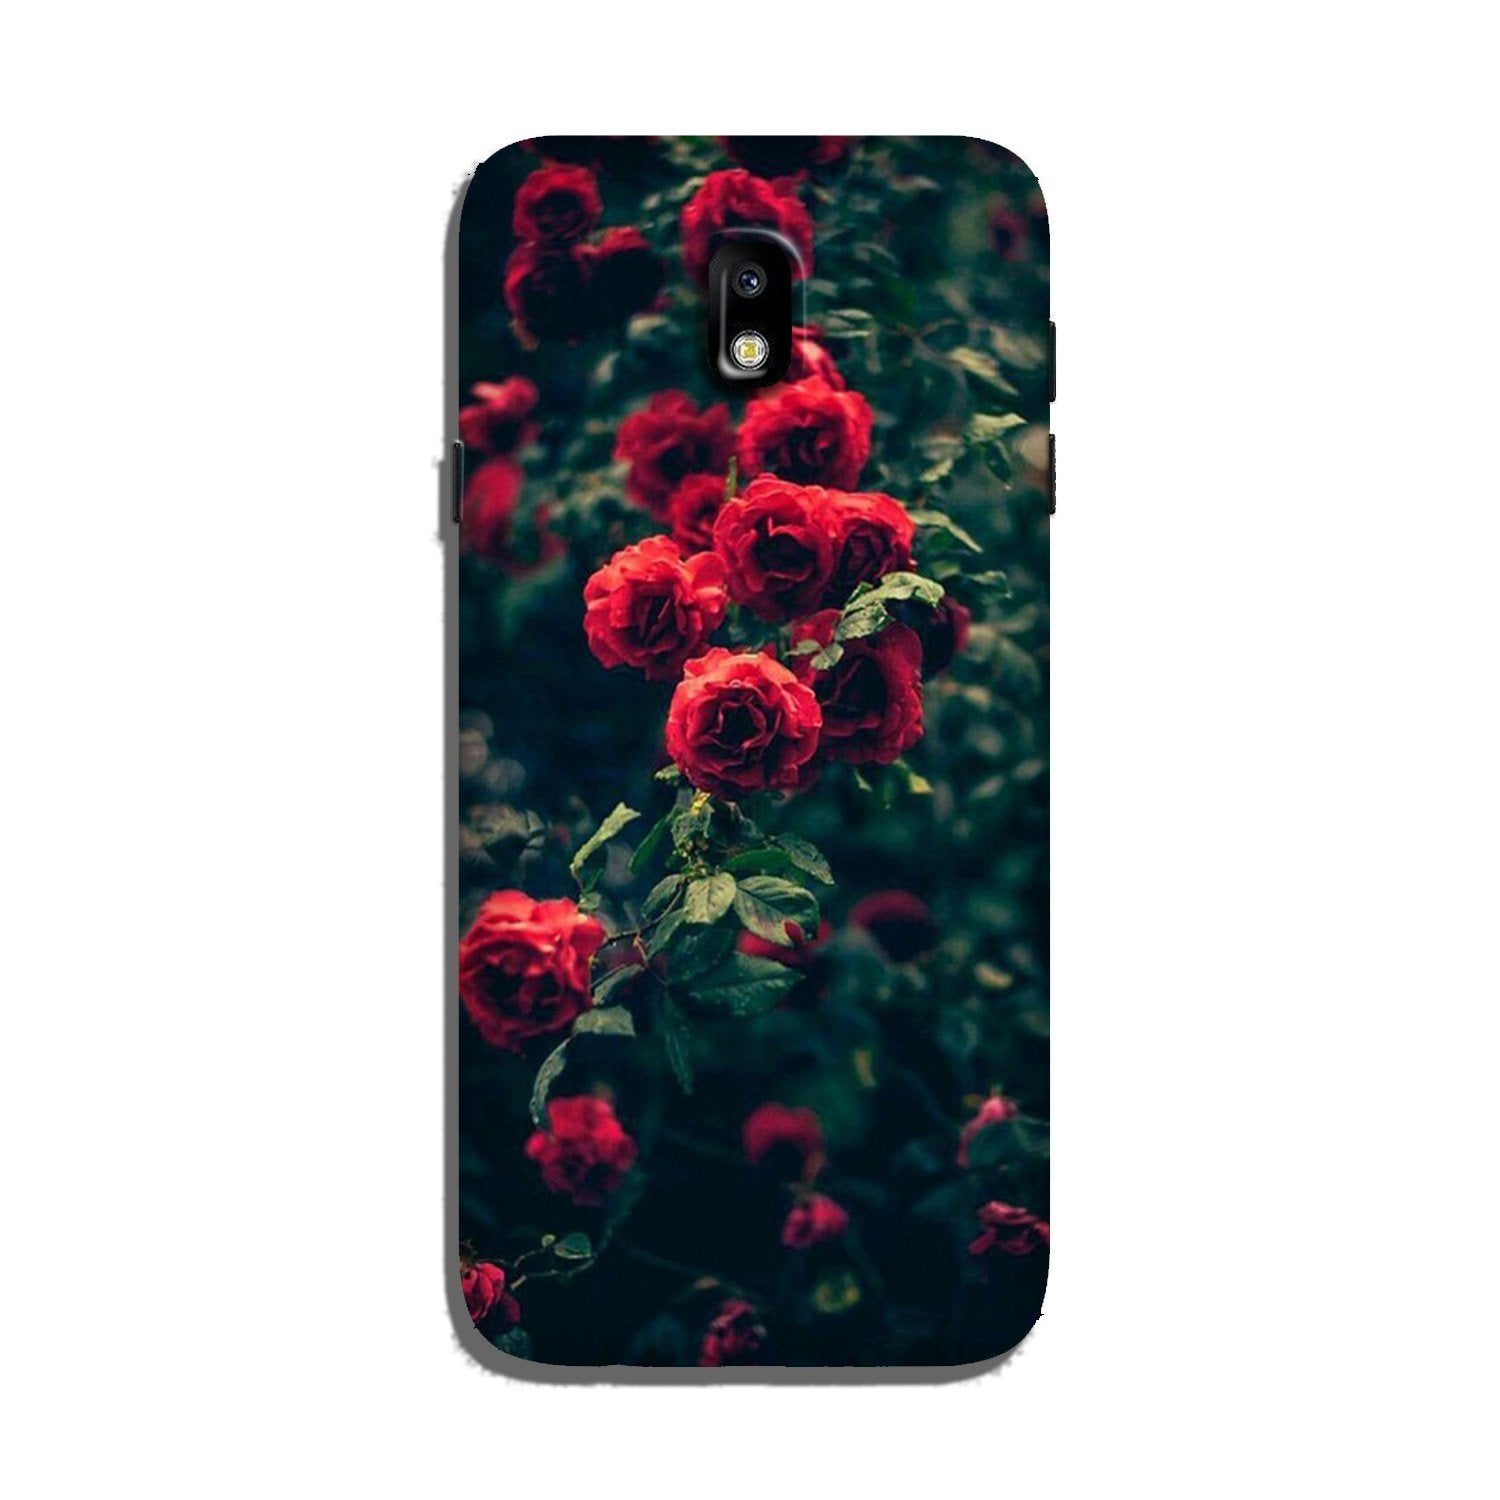 Red Rose Case for Galaxy J3 Pro